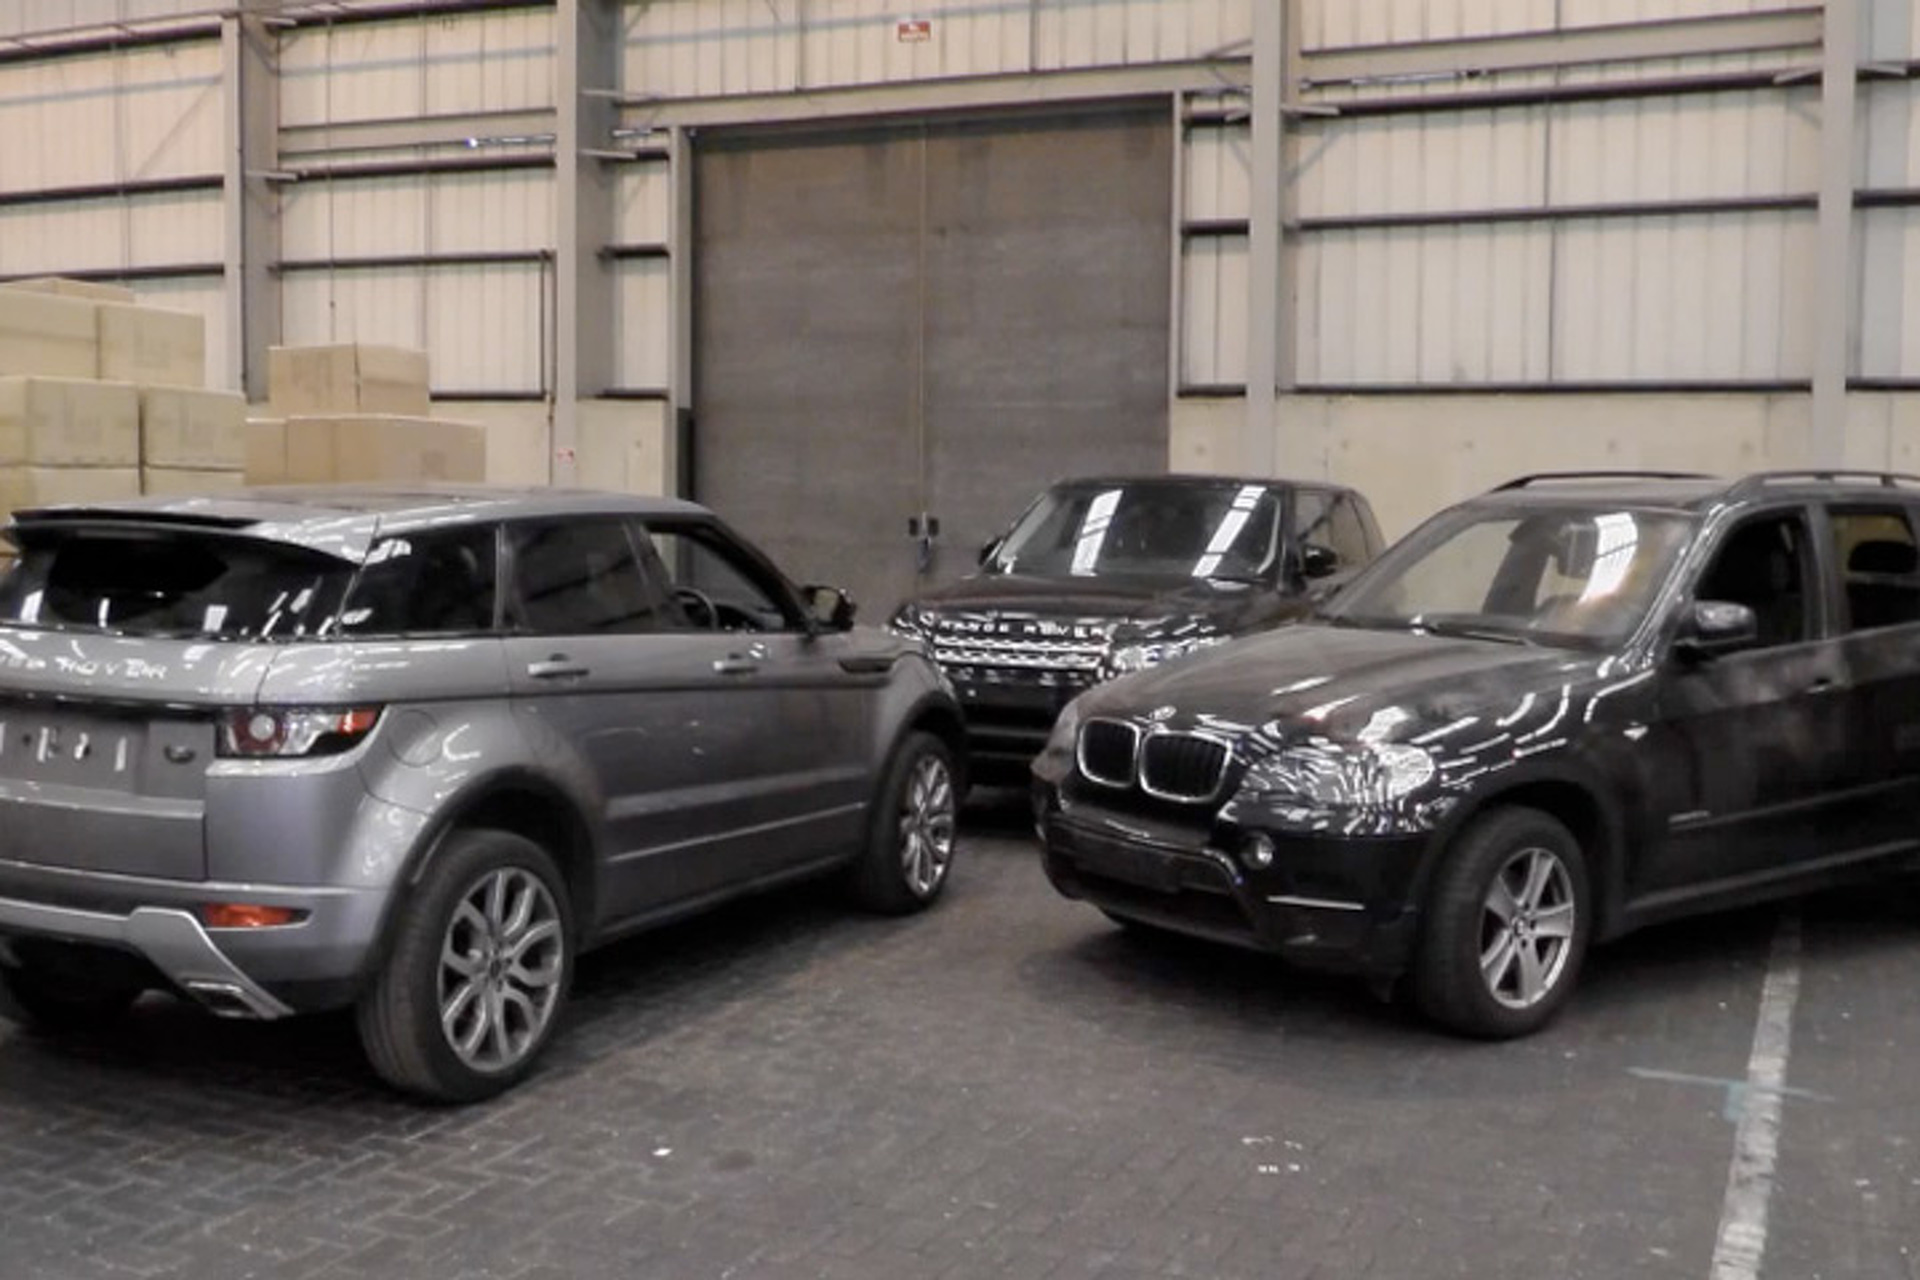 Almost $2M Worth of Stolen Luxury Cars and 4x4s Recovered